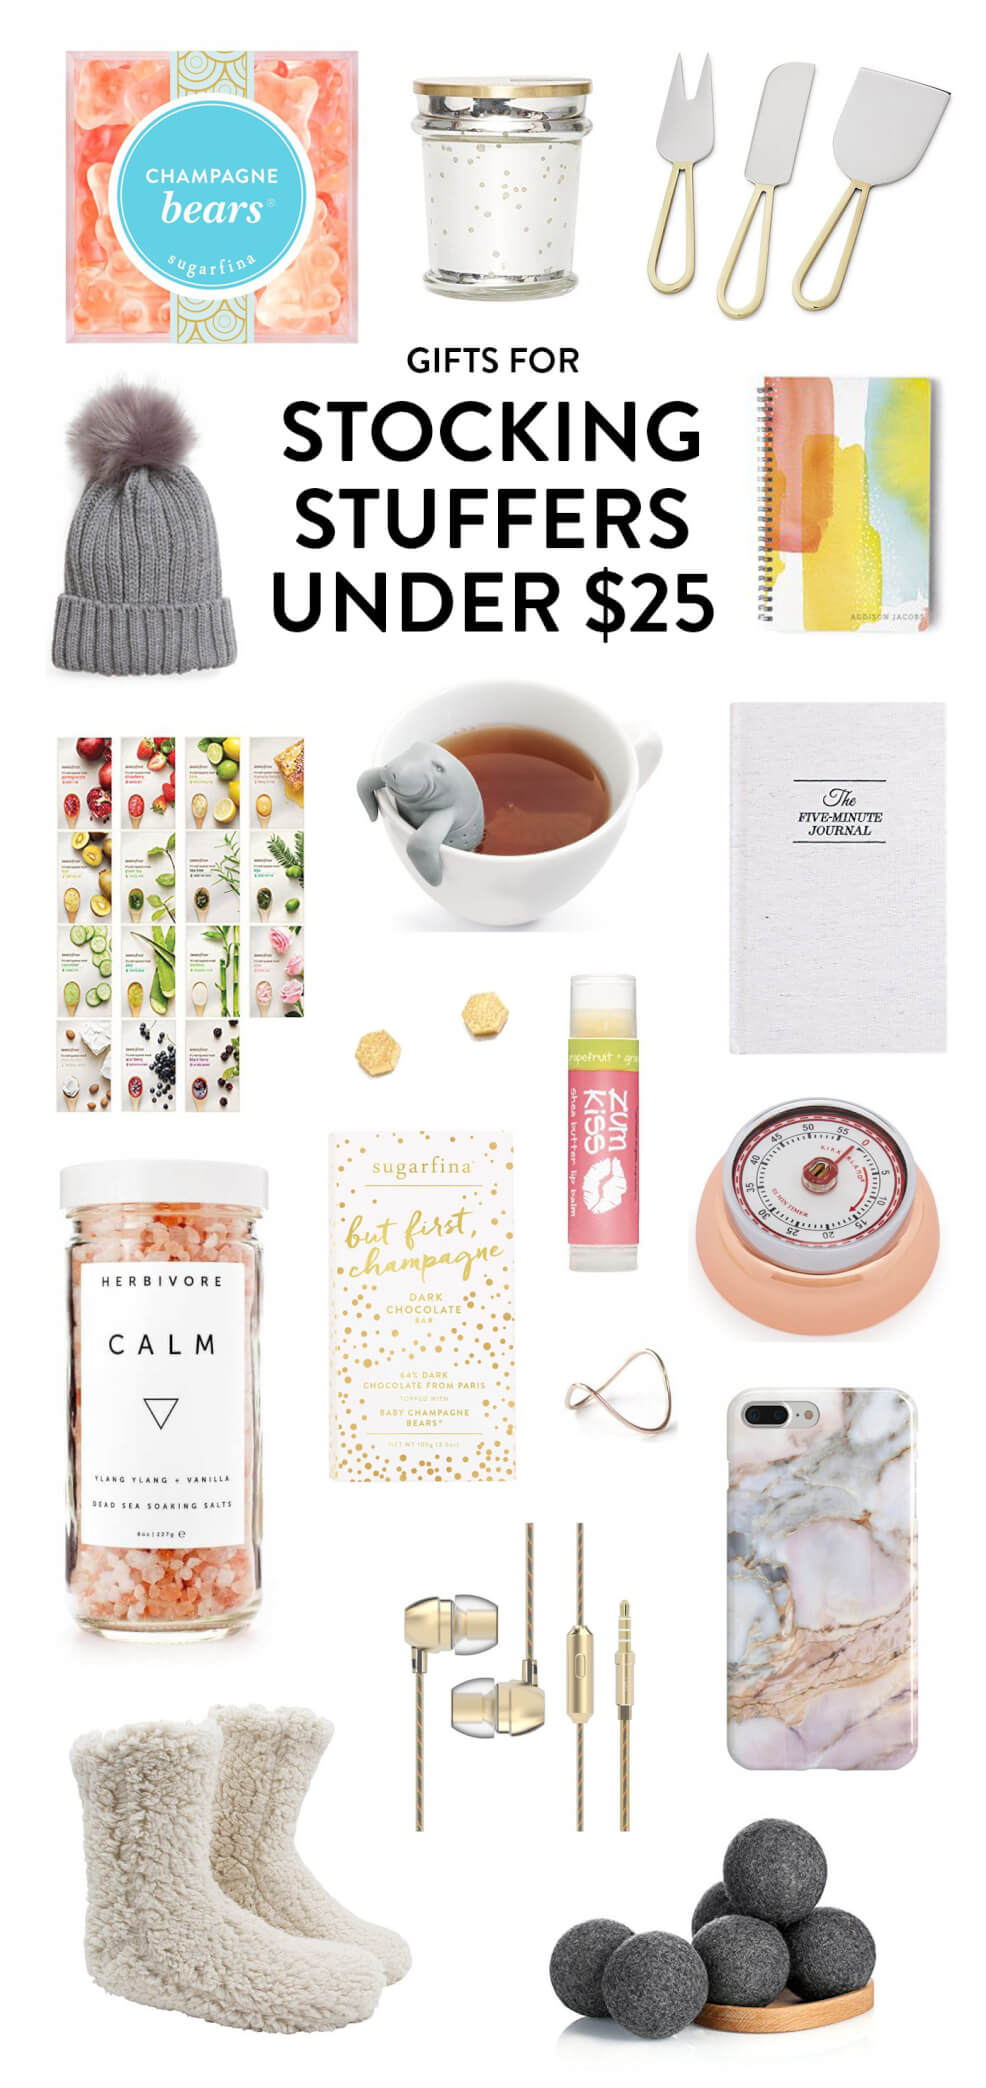 My favorite holiday gift ideas under $25, perfect for stocking stuffing! Ideas include champagne bears, a pretty candle, cheese knives, 5-minute journal, lip gloss, bath salts, fuzzy socks, organic wool dryer balls, earbuds, chocolate, earrings, ring, kitchen time, beauty face masks and a fuzzy stocking cap. | Stocking Stuffers Under $25 Gift Guide | Gimme Some Oven Holidays 2017